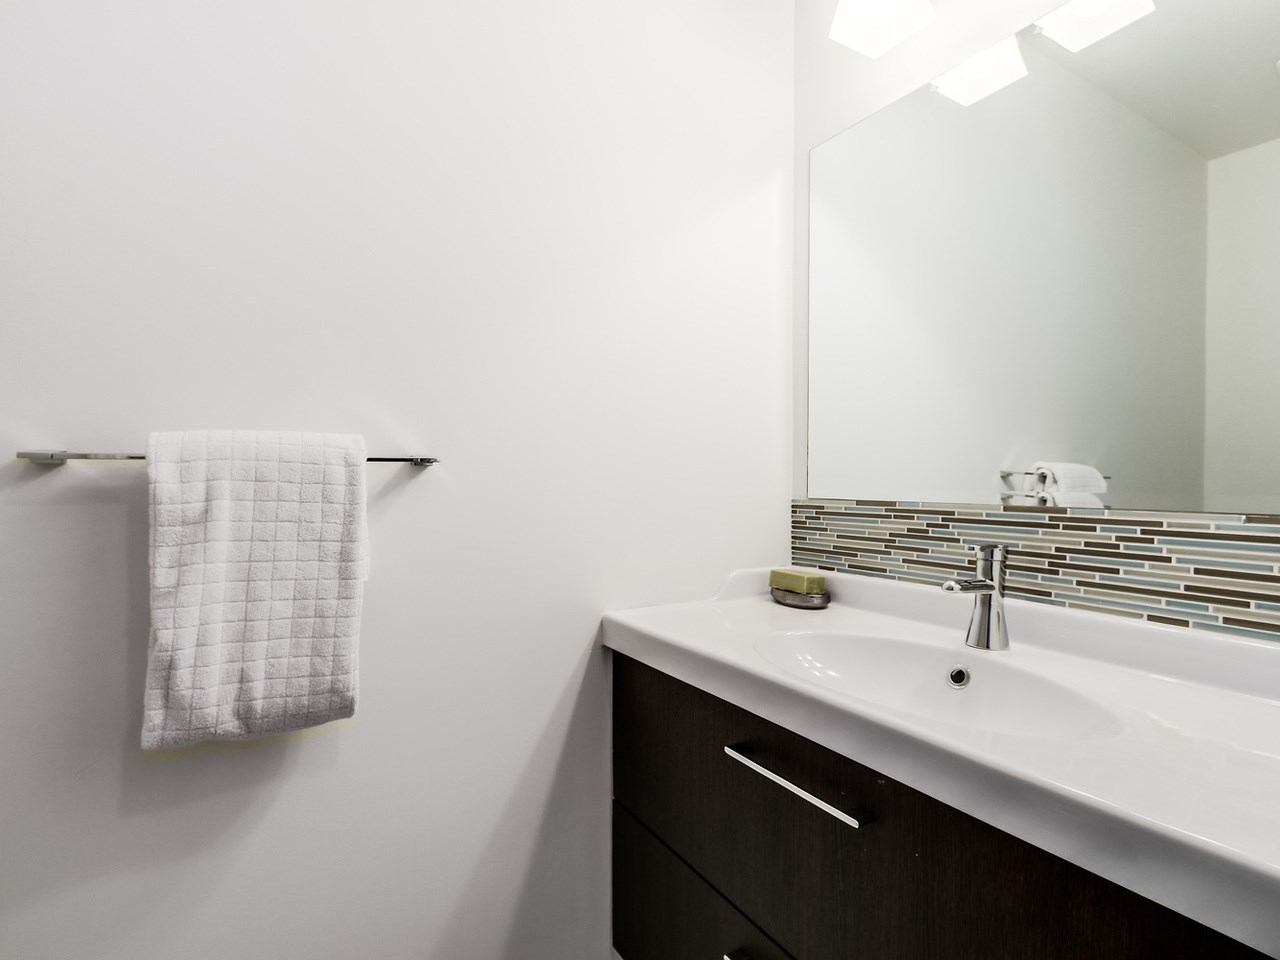 Photo 5: Photos: 2 269 E KEITH ROAD in North Vancouver: Lower Lonsdale House 1/2 Duplex for sale : MLS® # R2025742